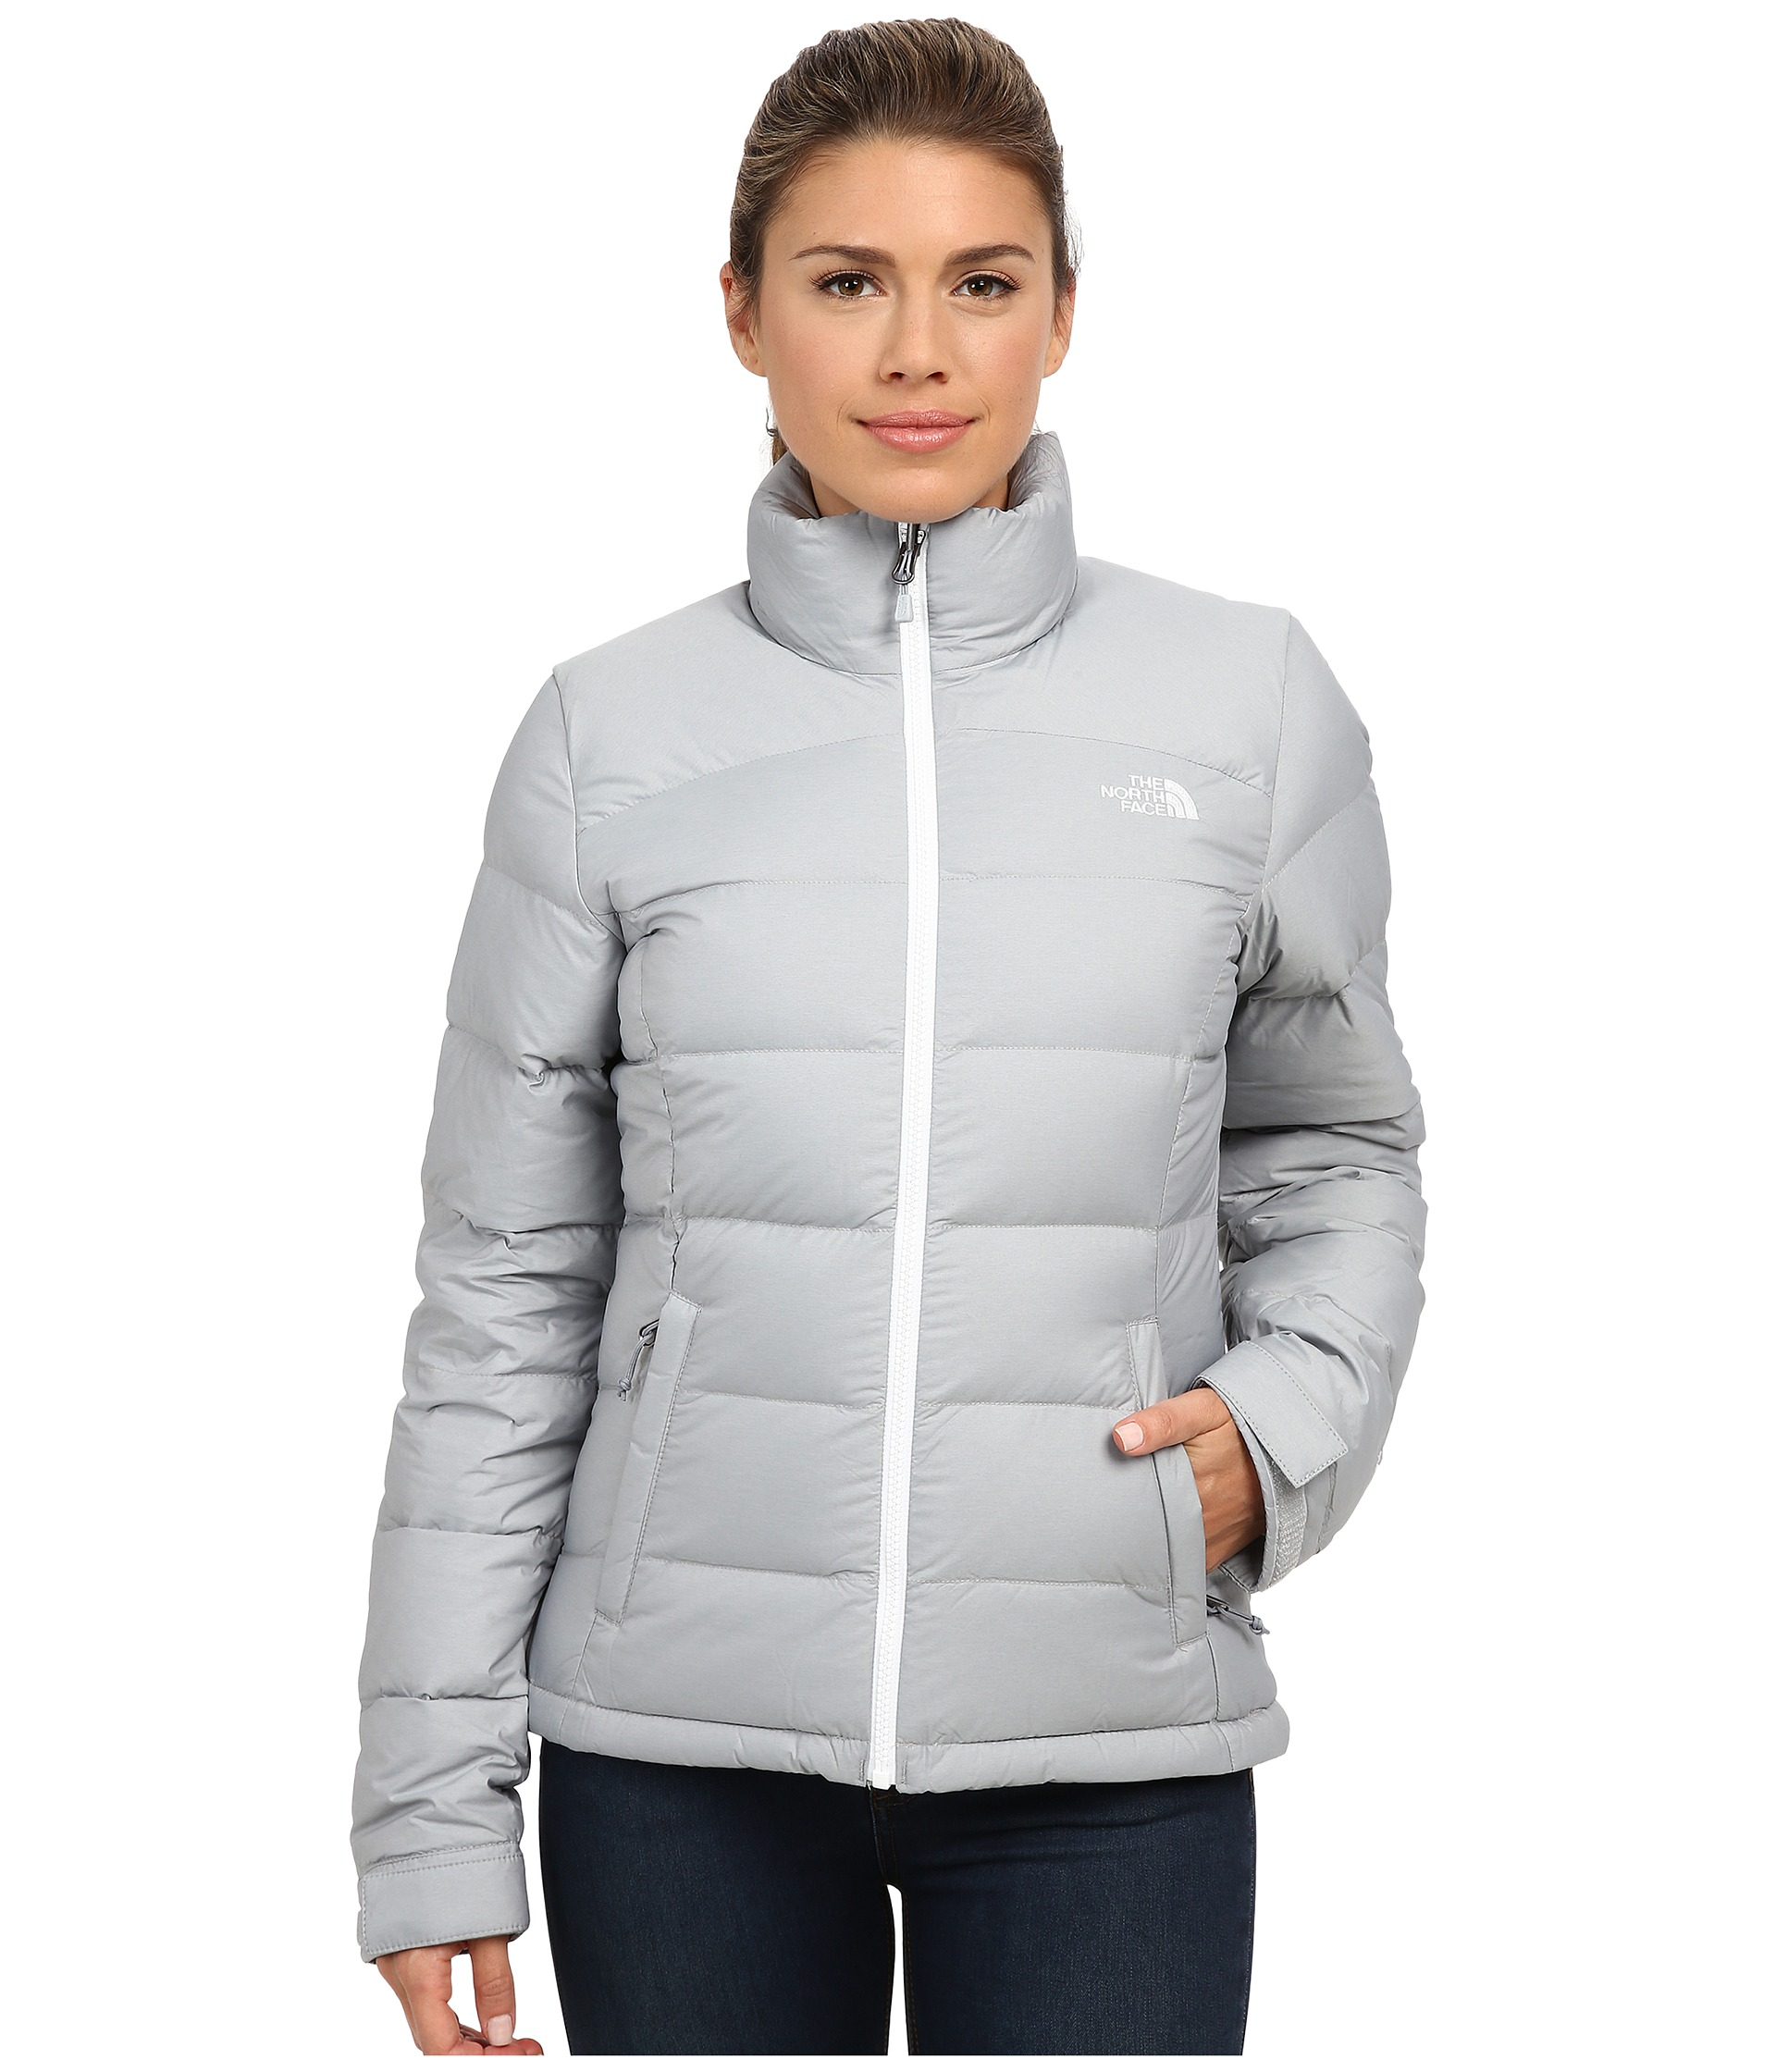 North Face Jacket Women >> the north face nuptse 2 jacket